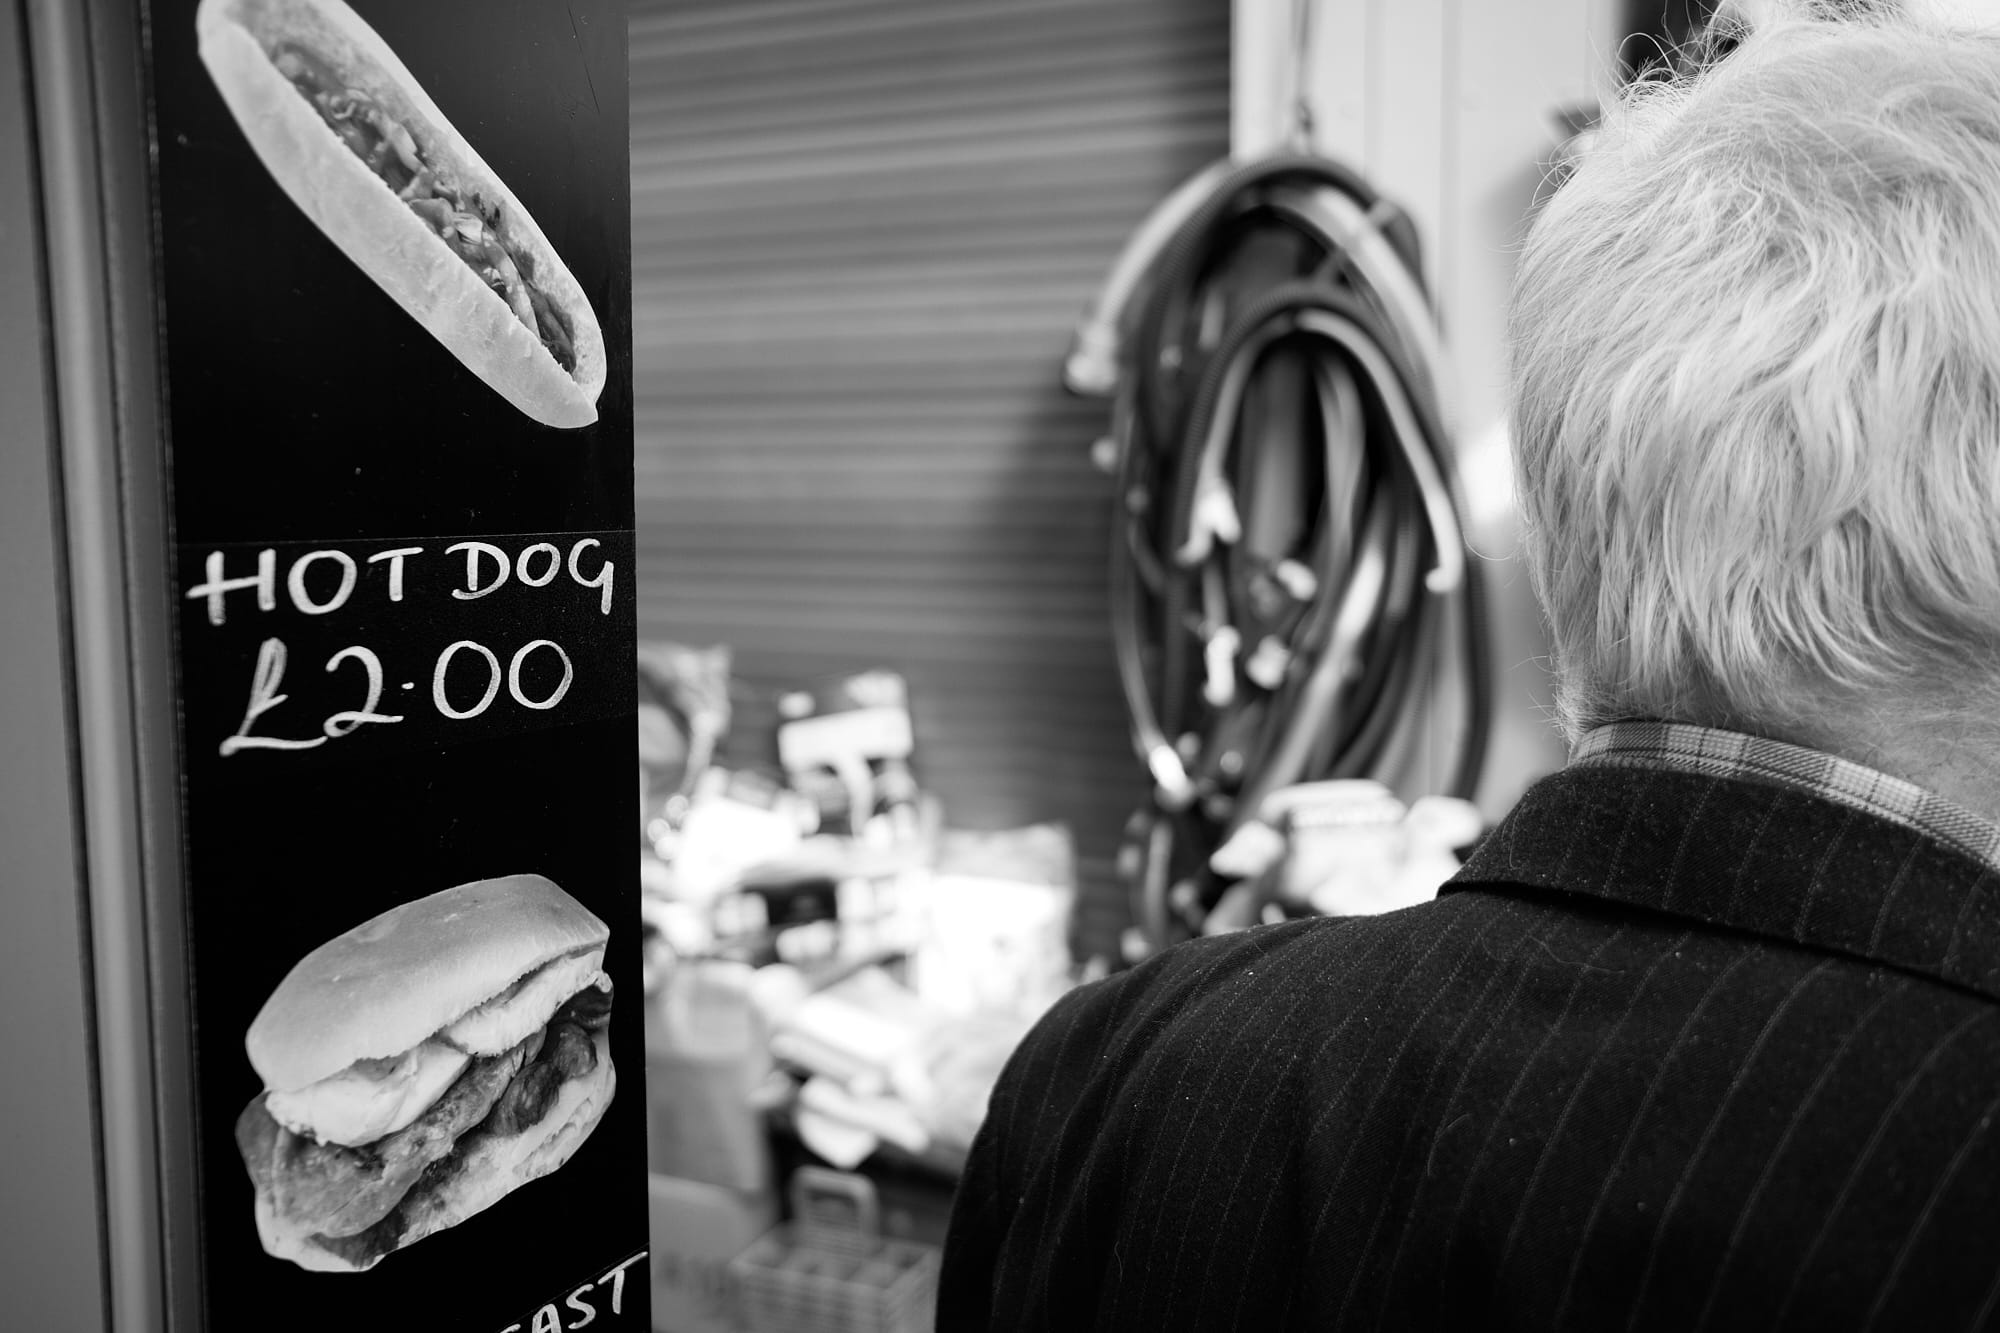 'Hot Dog' sign and back of old man's head